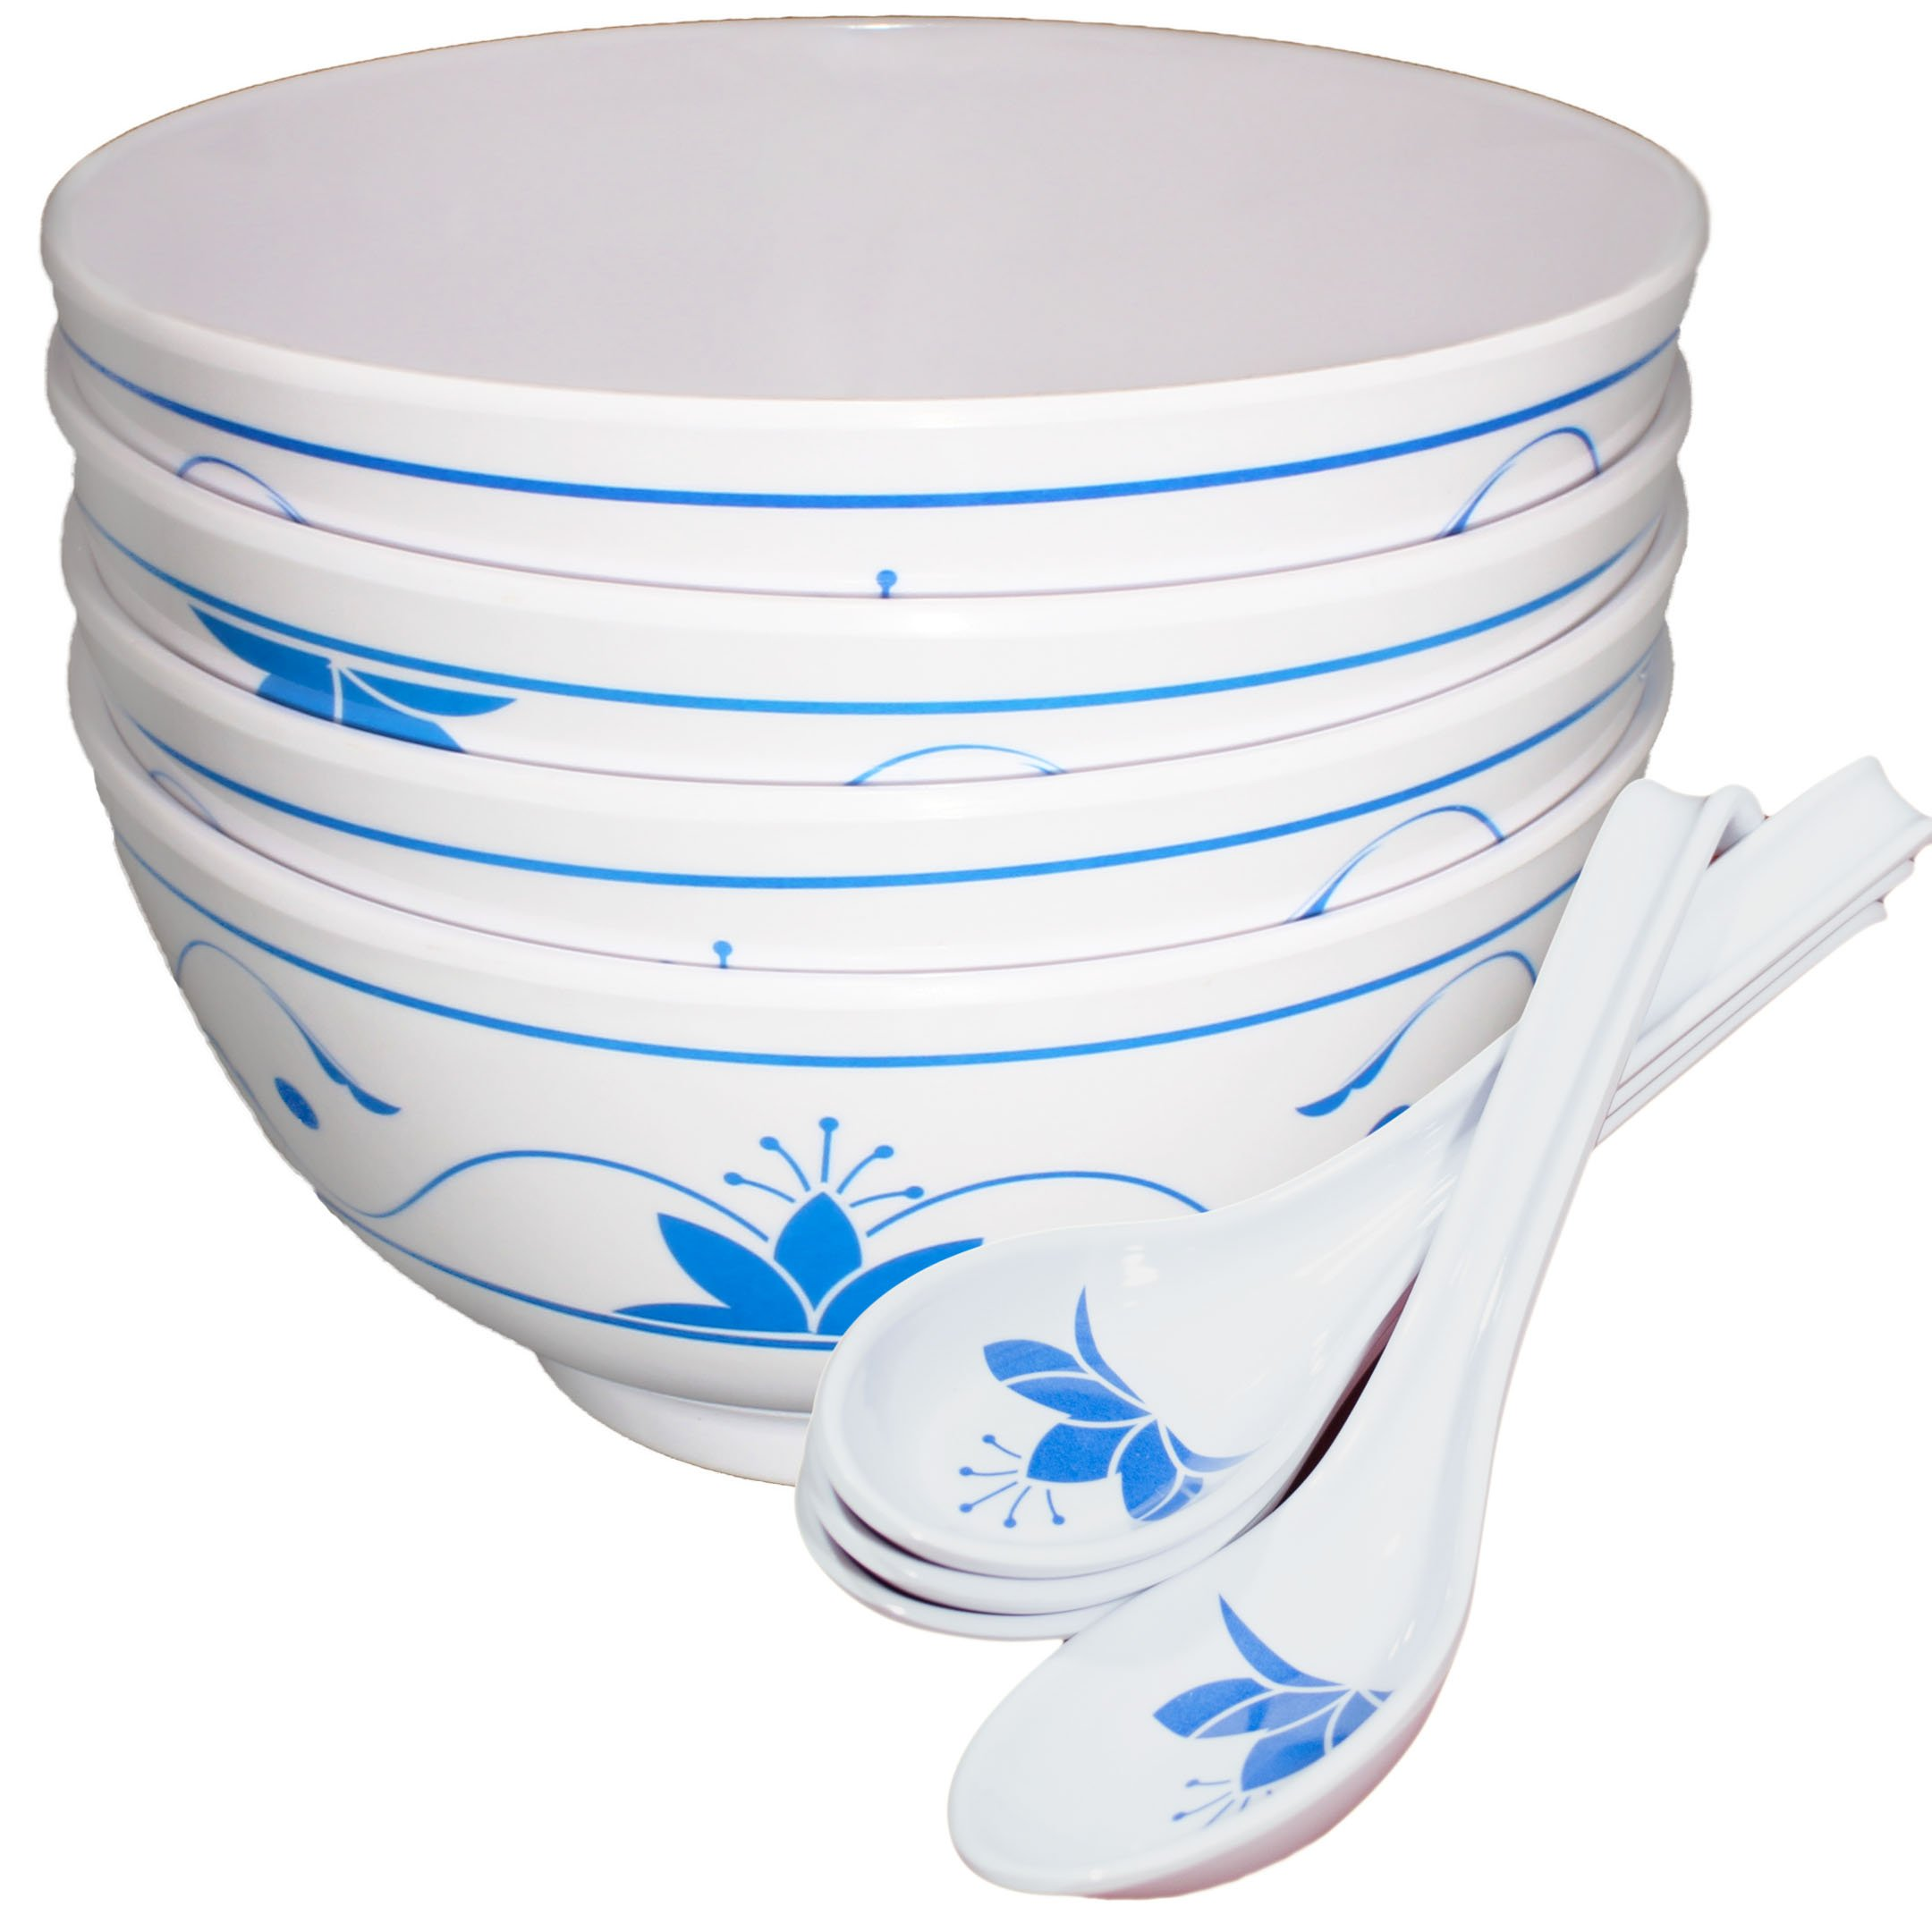 Chef Miso Set of 4 Melamine Soup Bowls and Spoons - Blue Lotus 24 Ounce